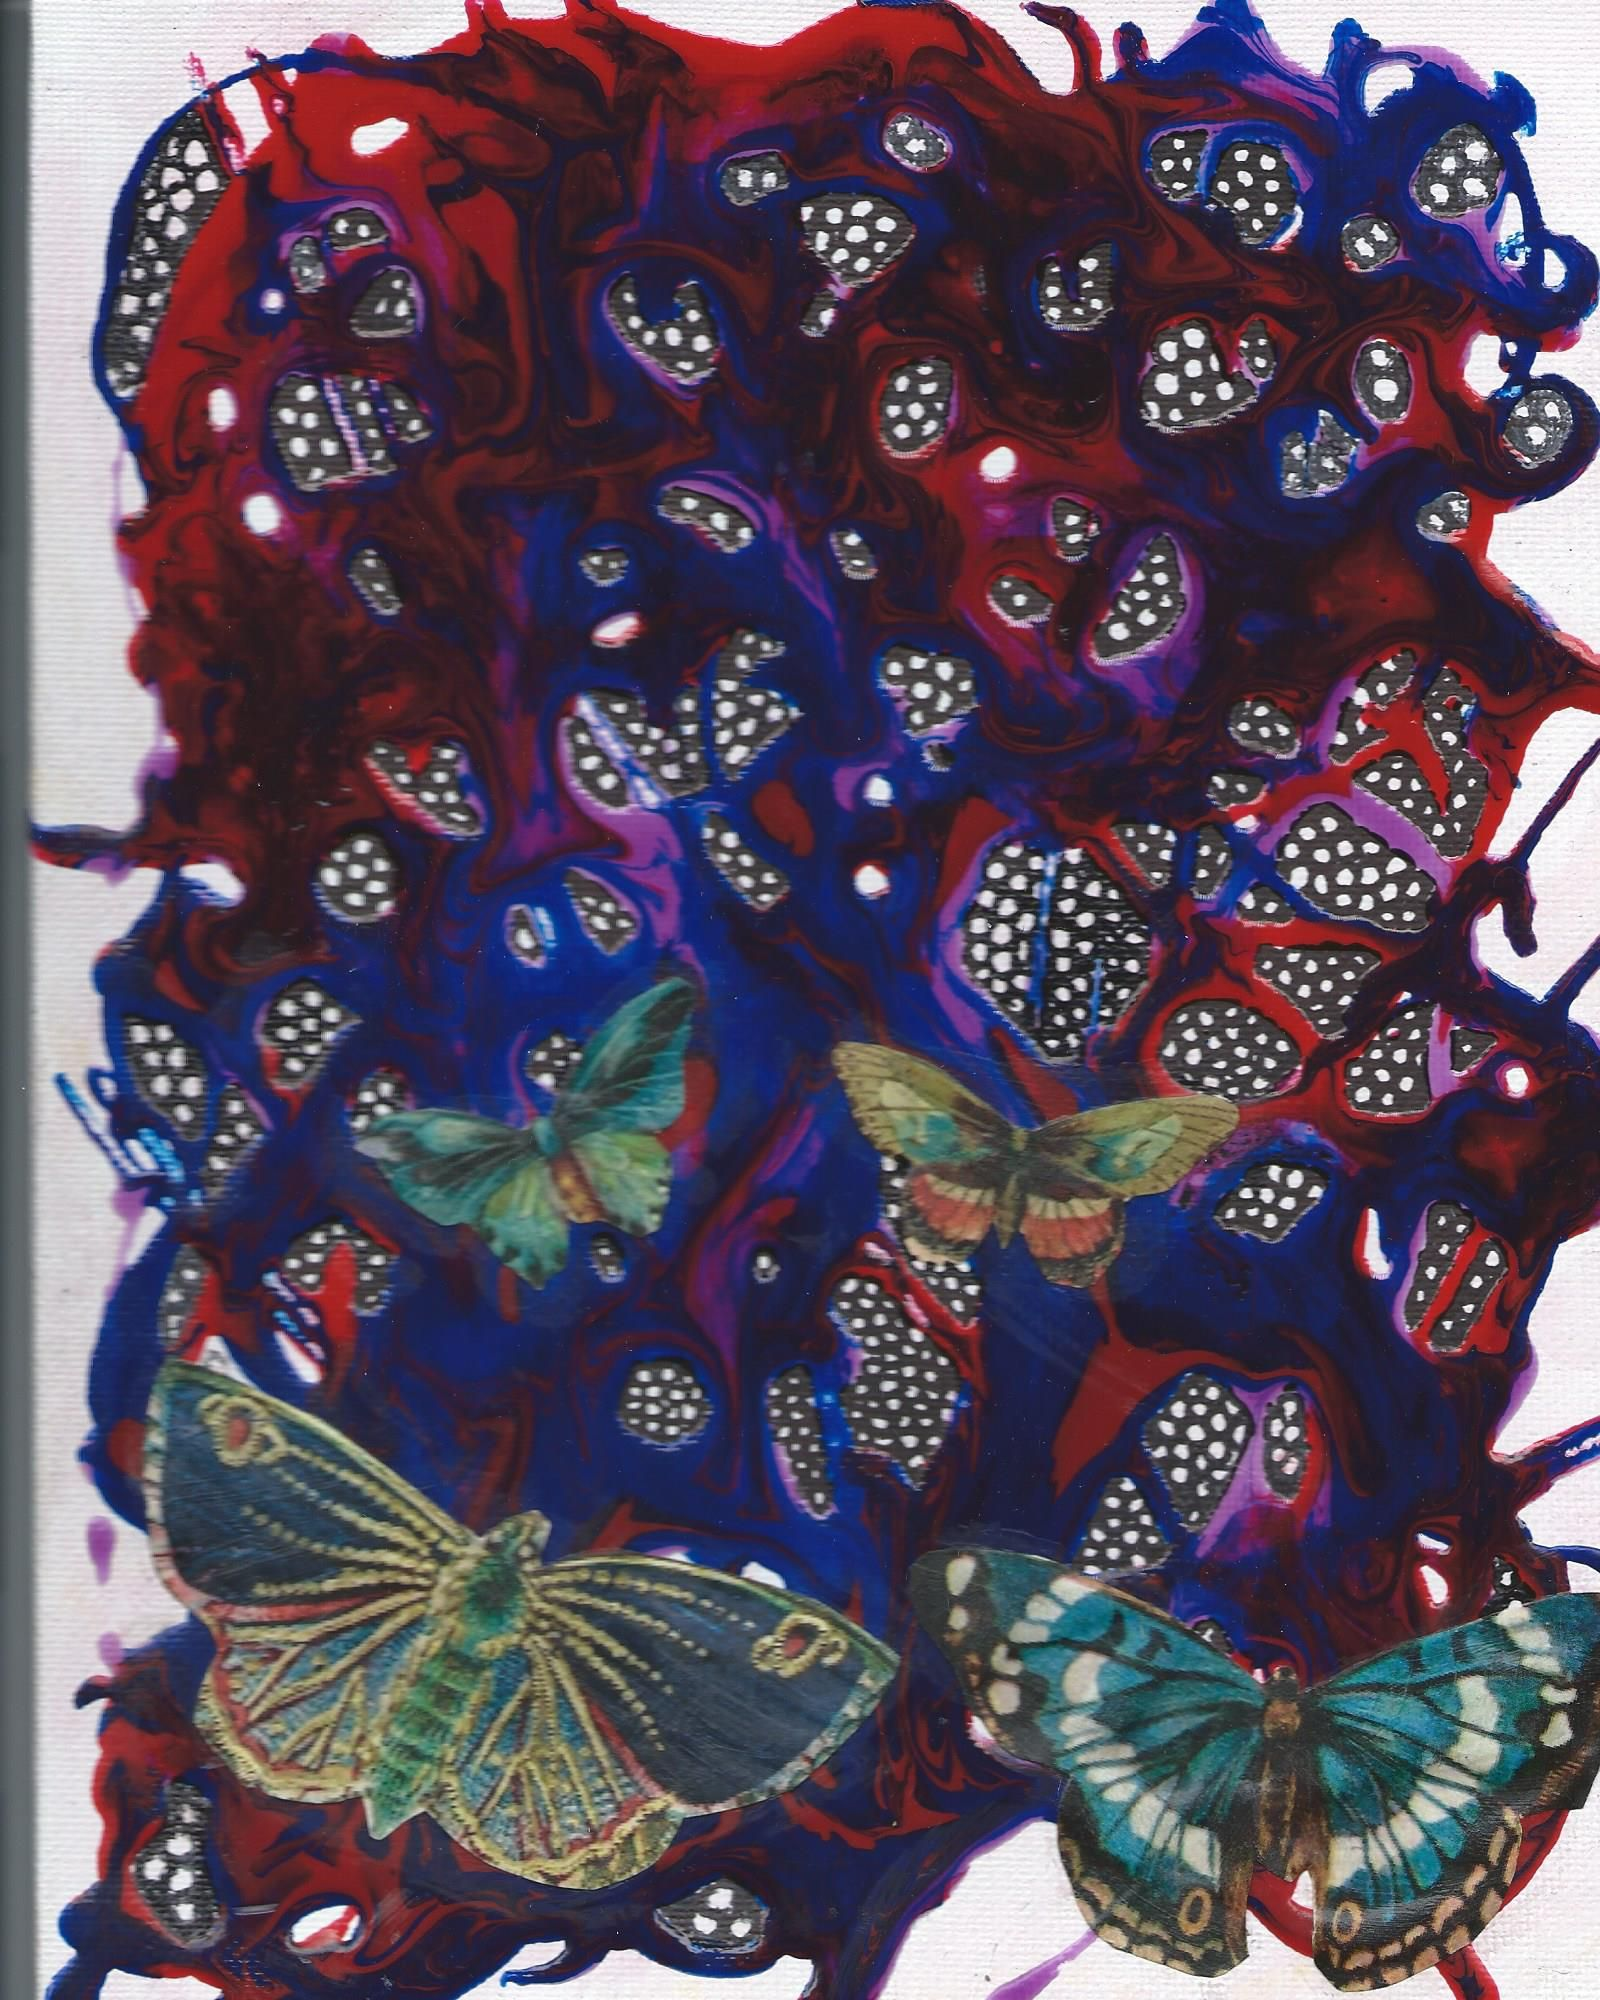 my newest canvas using acrylic pouring medium, markers and decoupage elements. love the butterflies